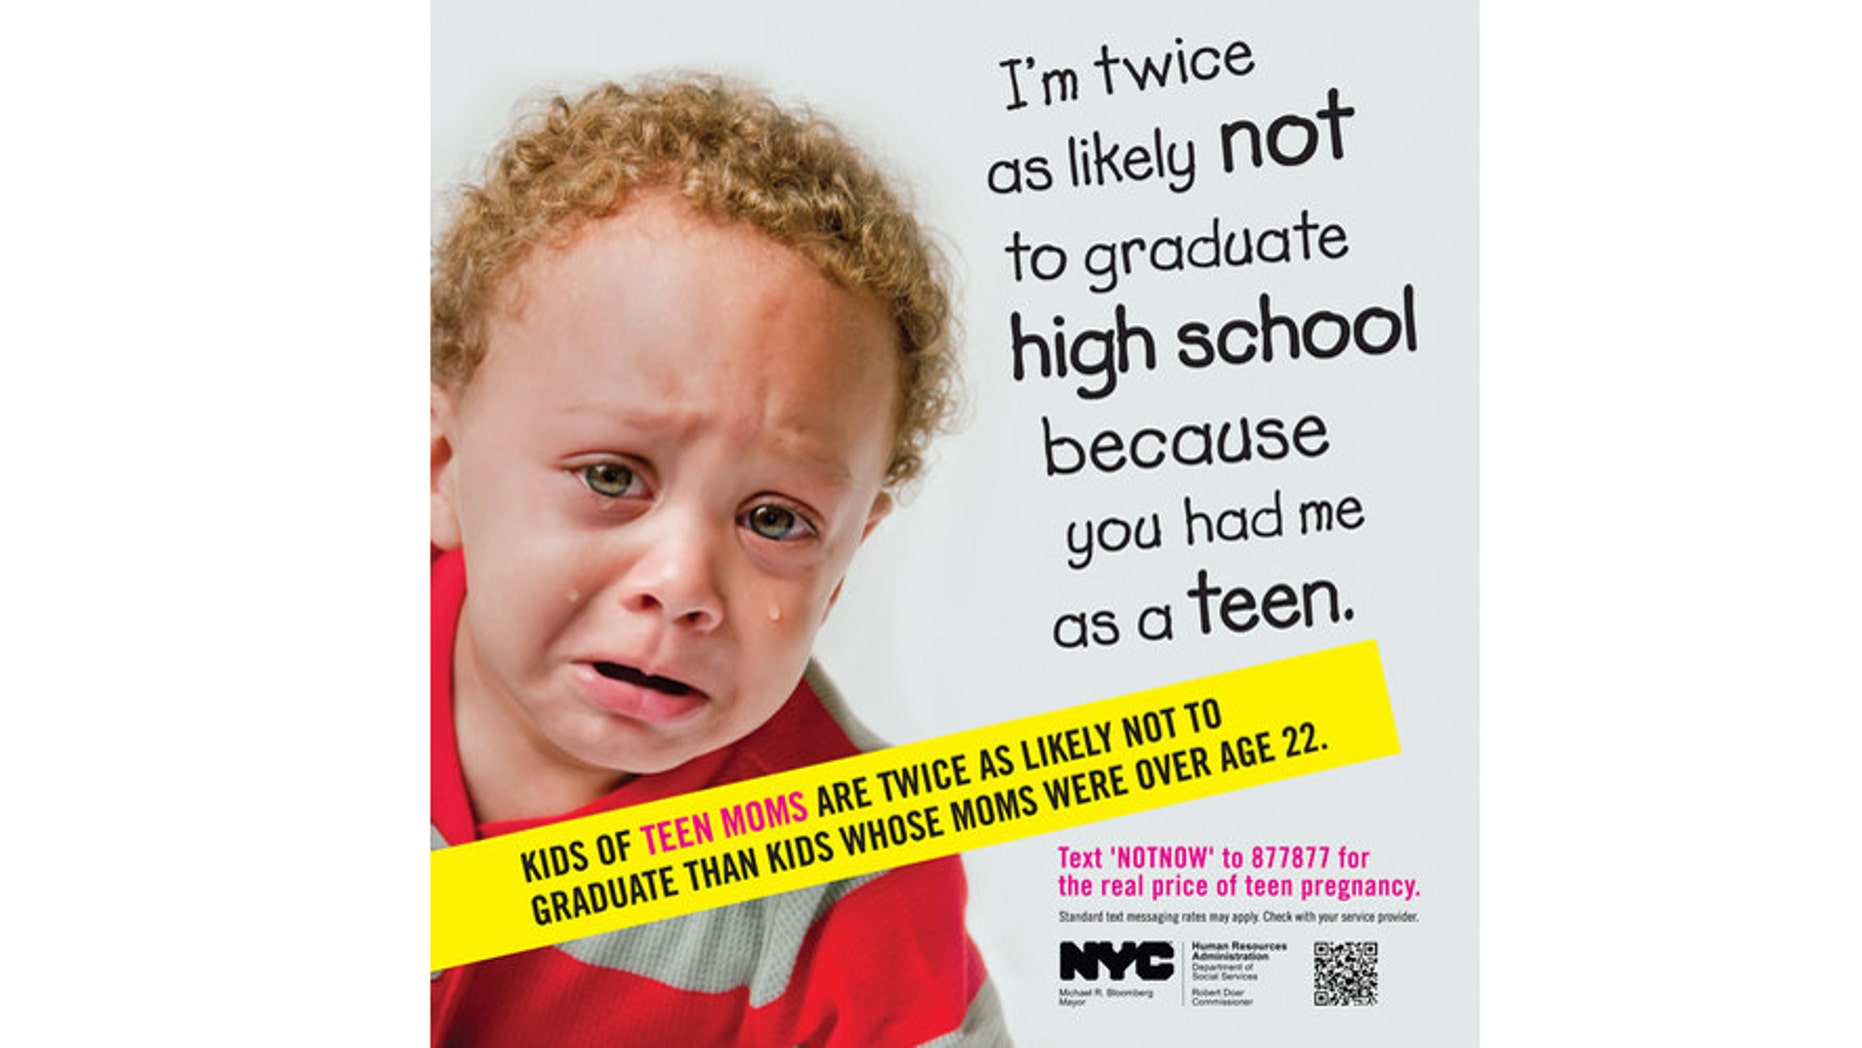 Teen Pregnancy Prevention Posters Cause Outrage In New -4145